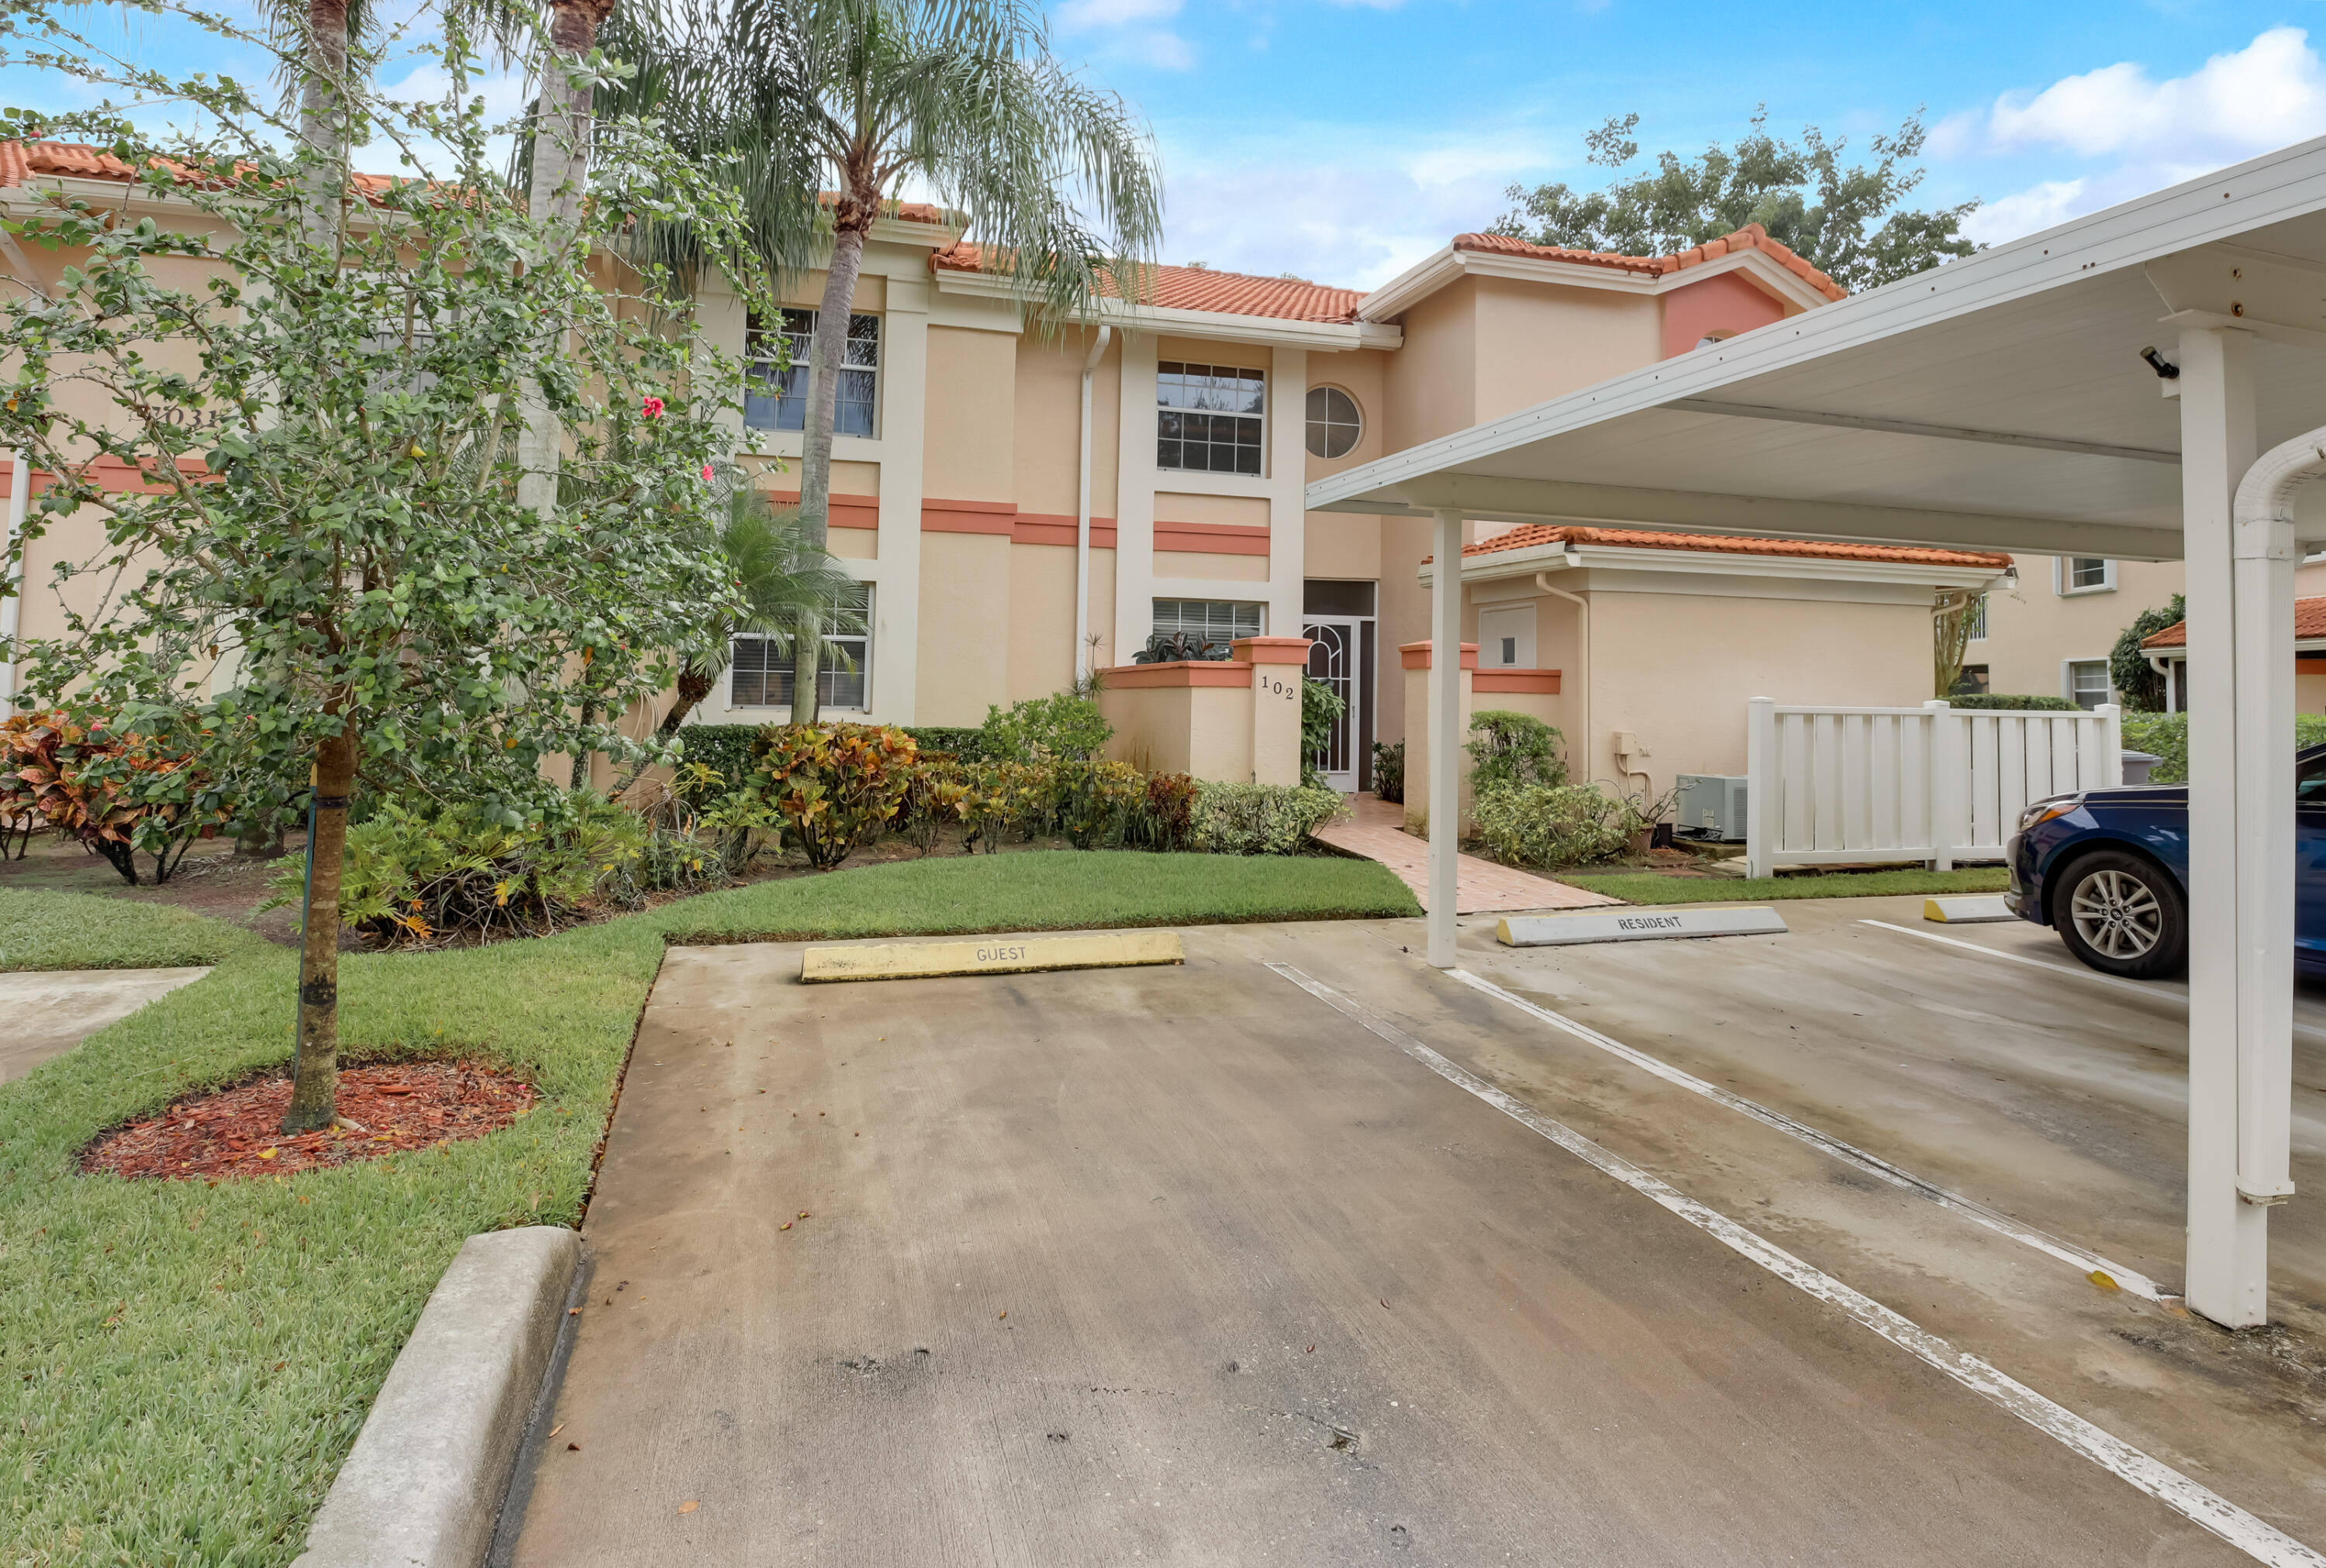 7031  Summer Tree Drive 102 For Sale 10754240, FL